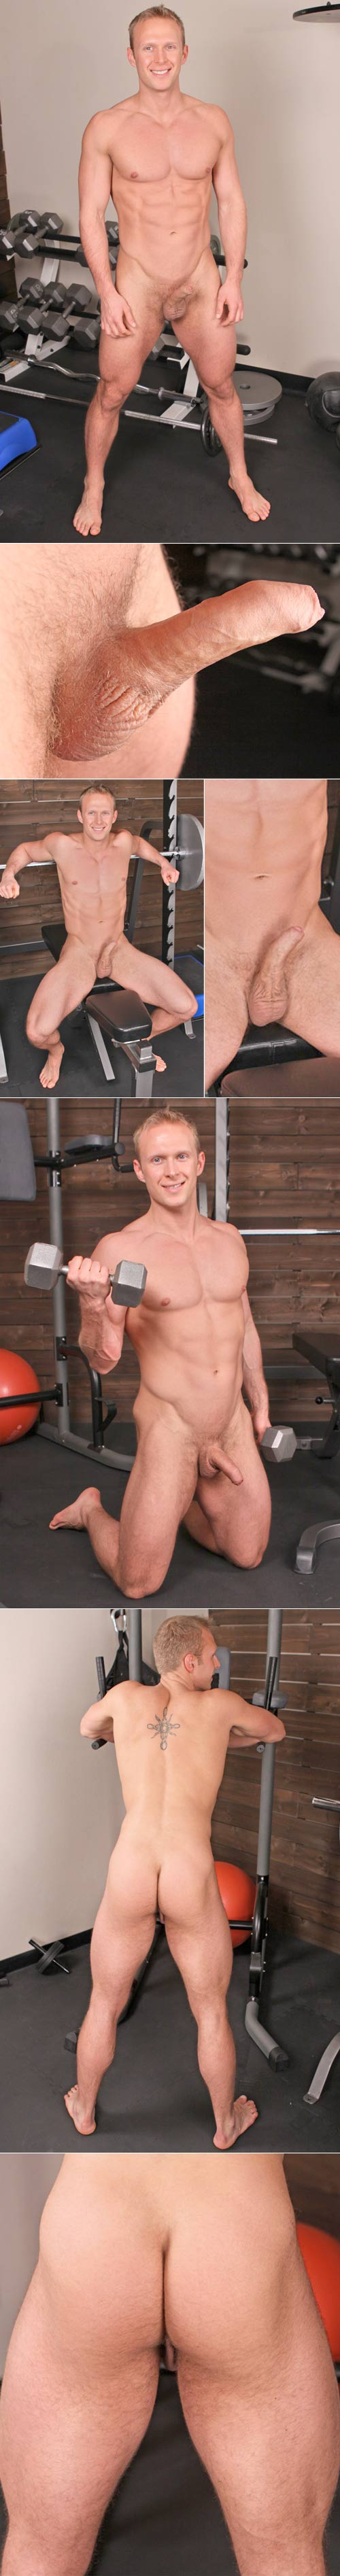 Luke II at SeanCody